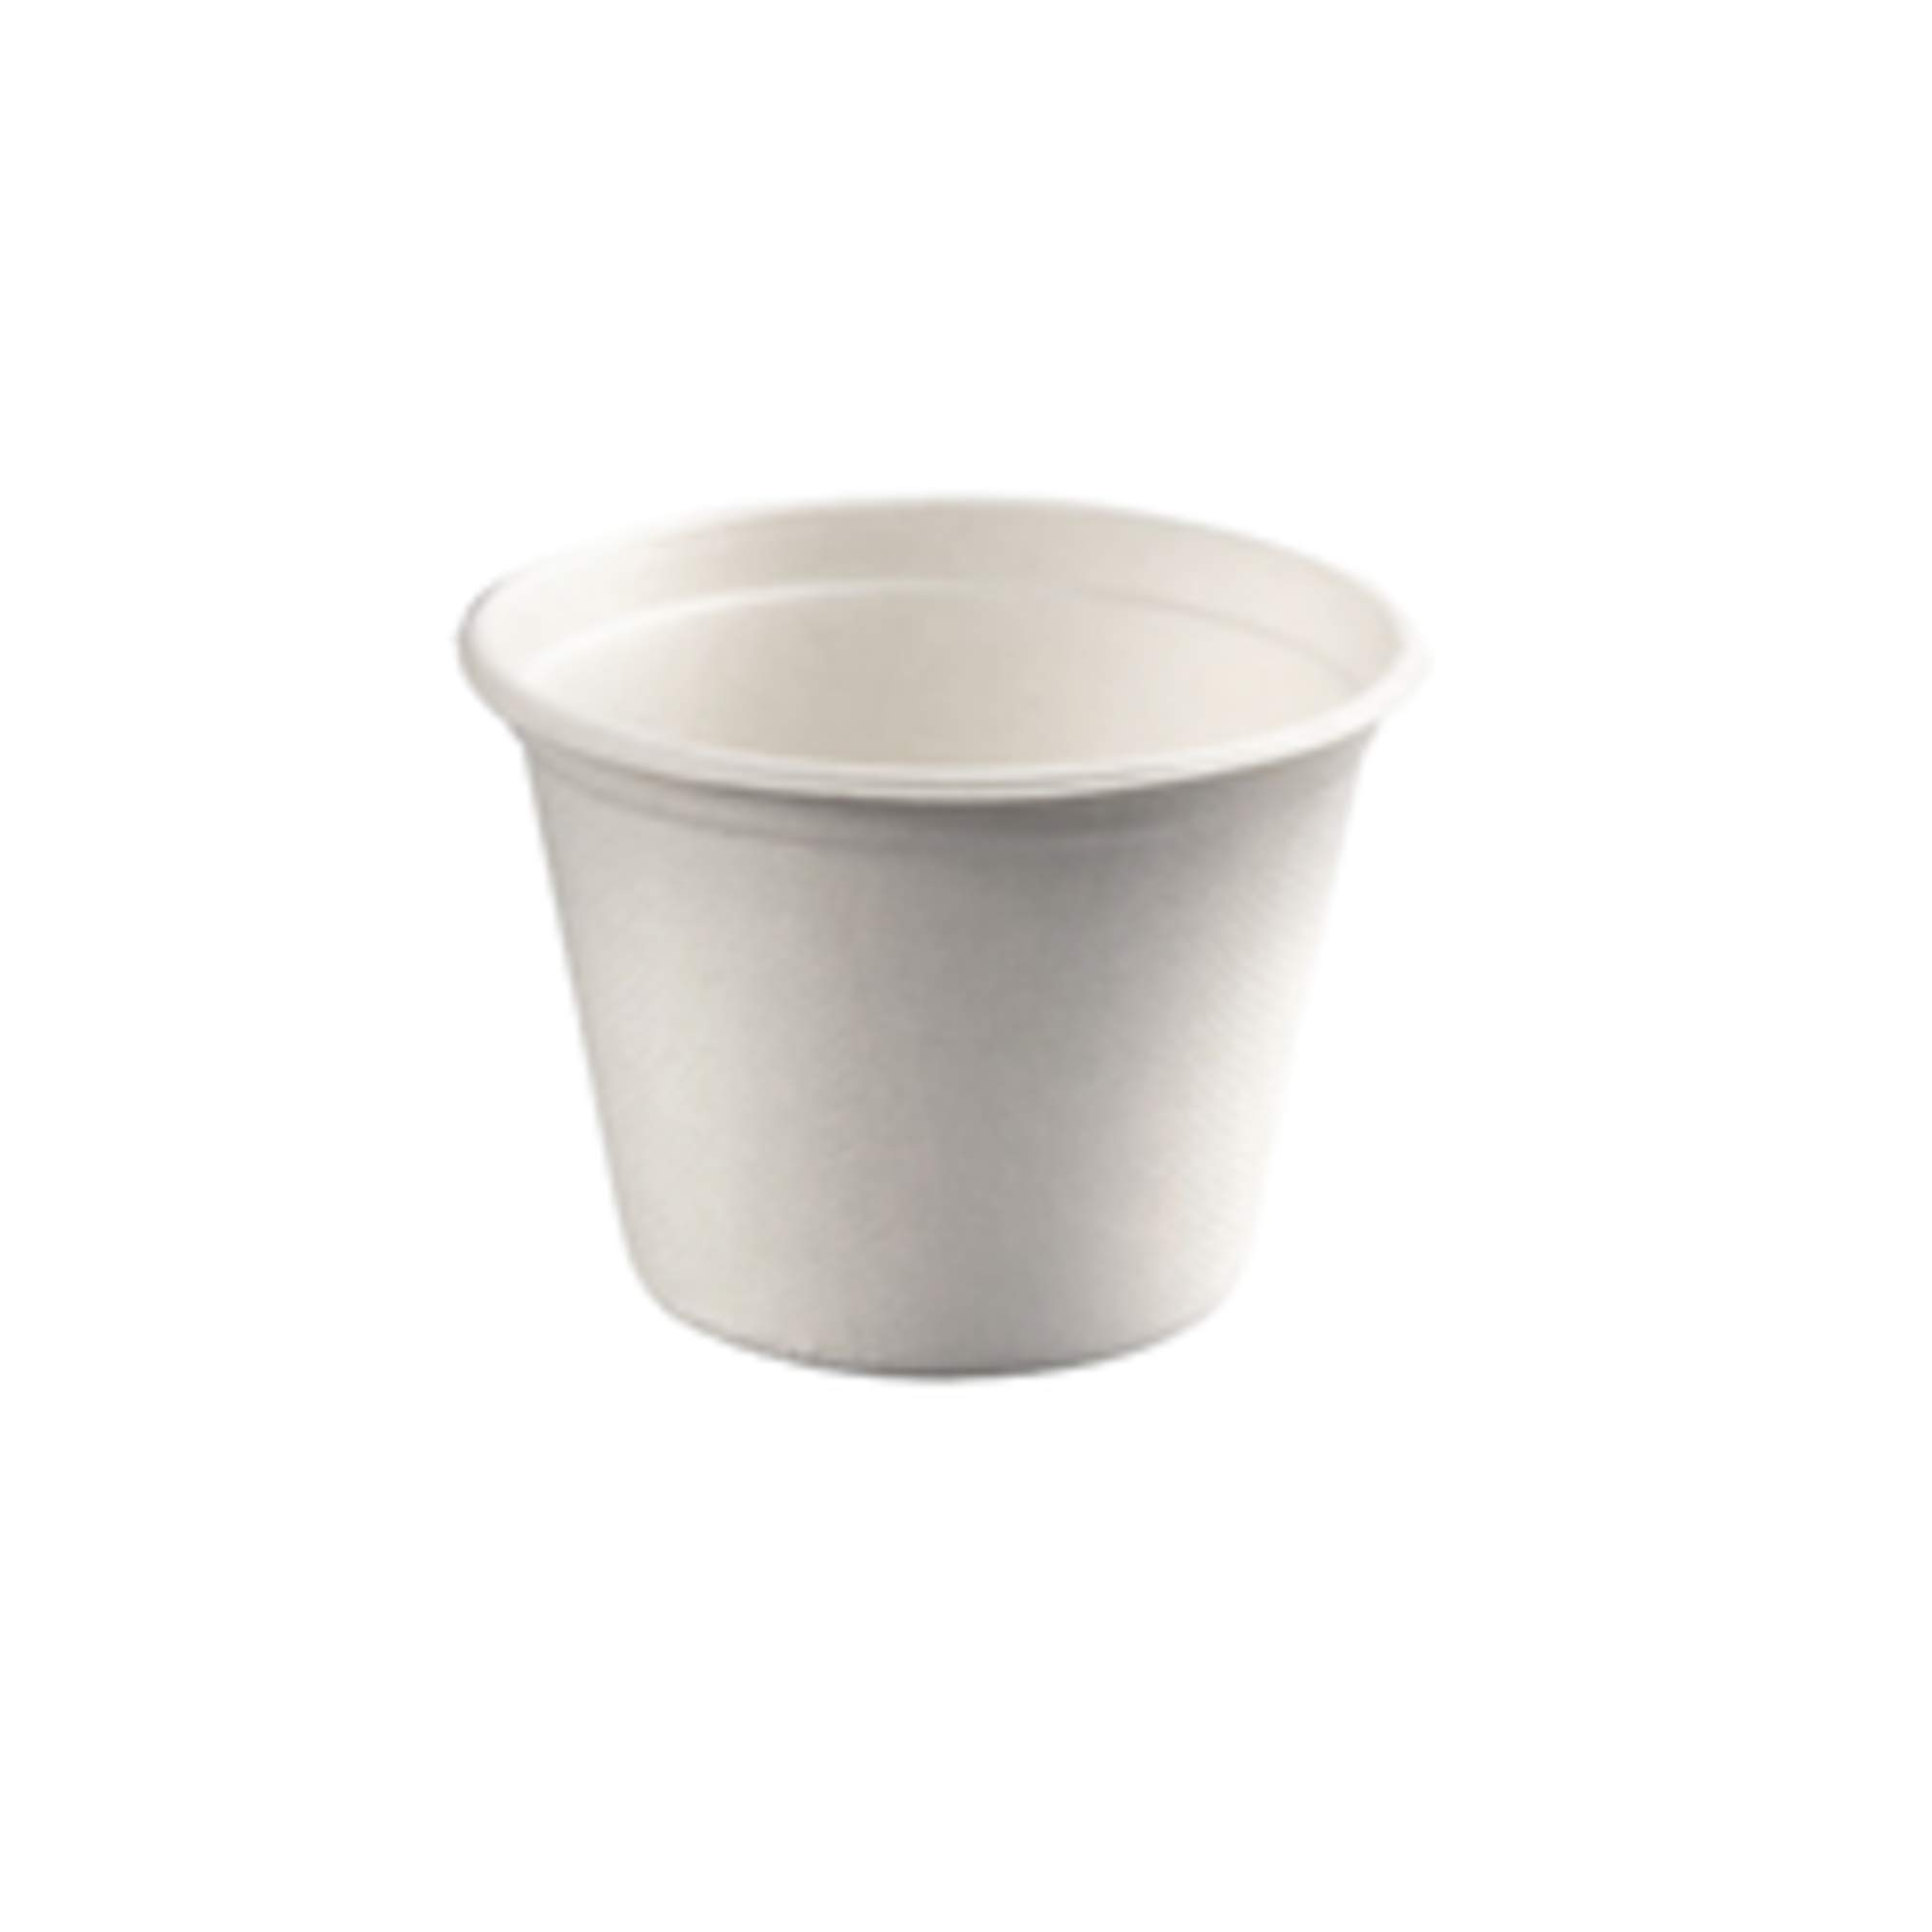 """Round Sugarcane Soup Container (Case of 500), PacknWood - Compostable and Biodegradable Soup Bowls (12 oz, 4.3"""" Diameter) 210GPU350"""